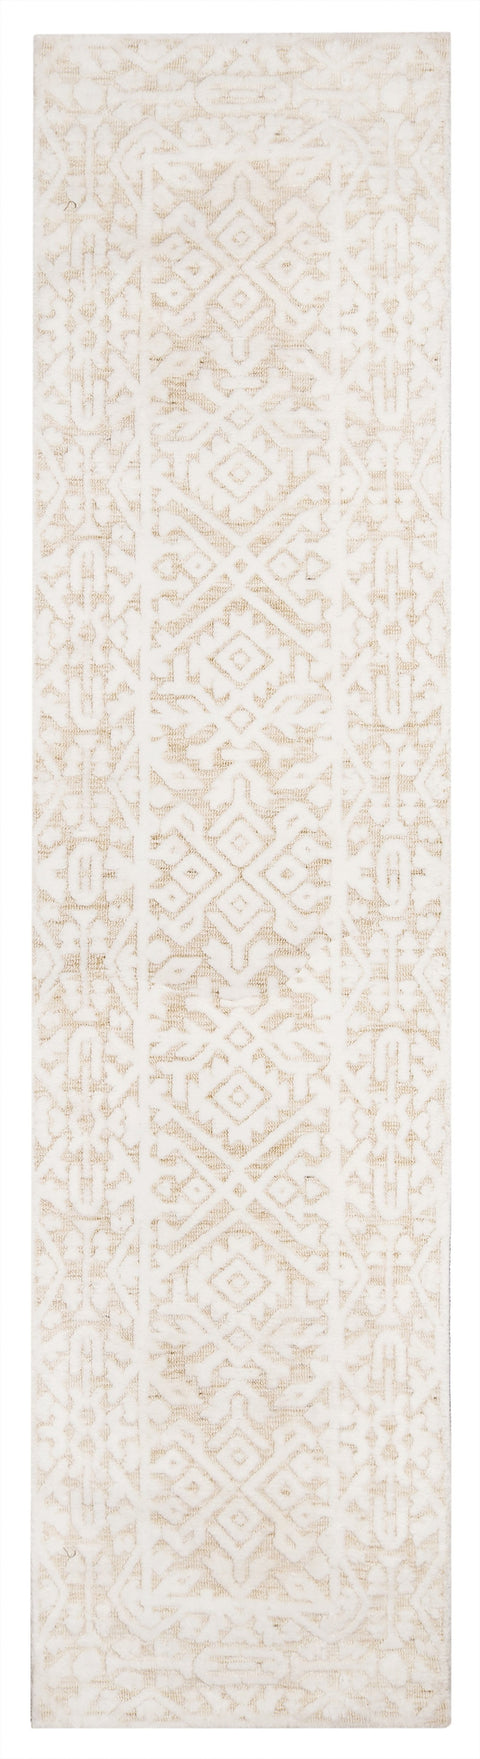 Josephine Ivory and Cream Tribal Transitional Runner Rug